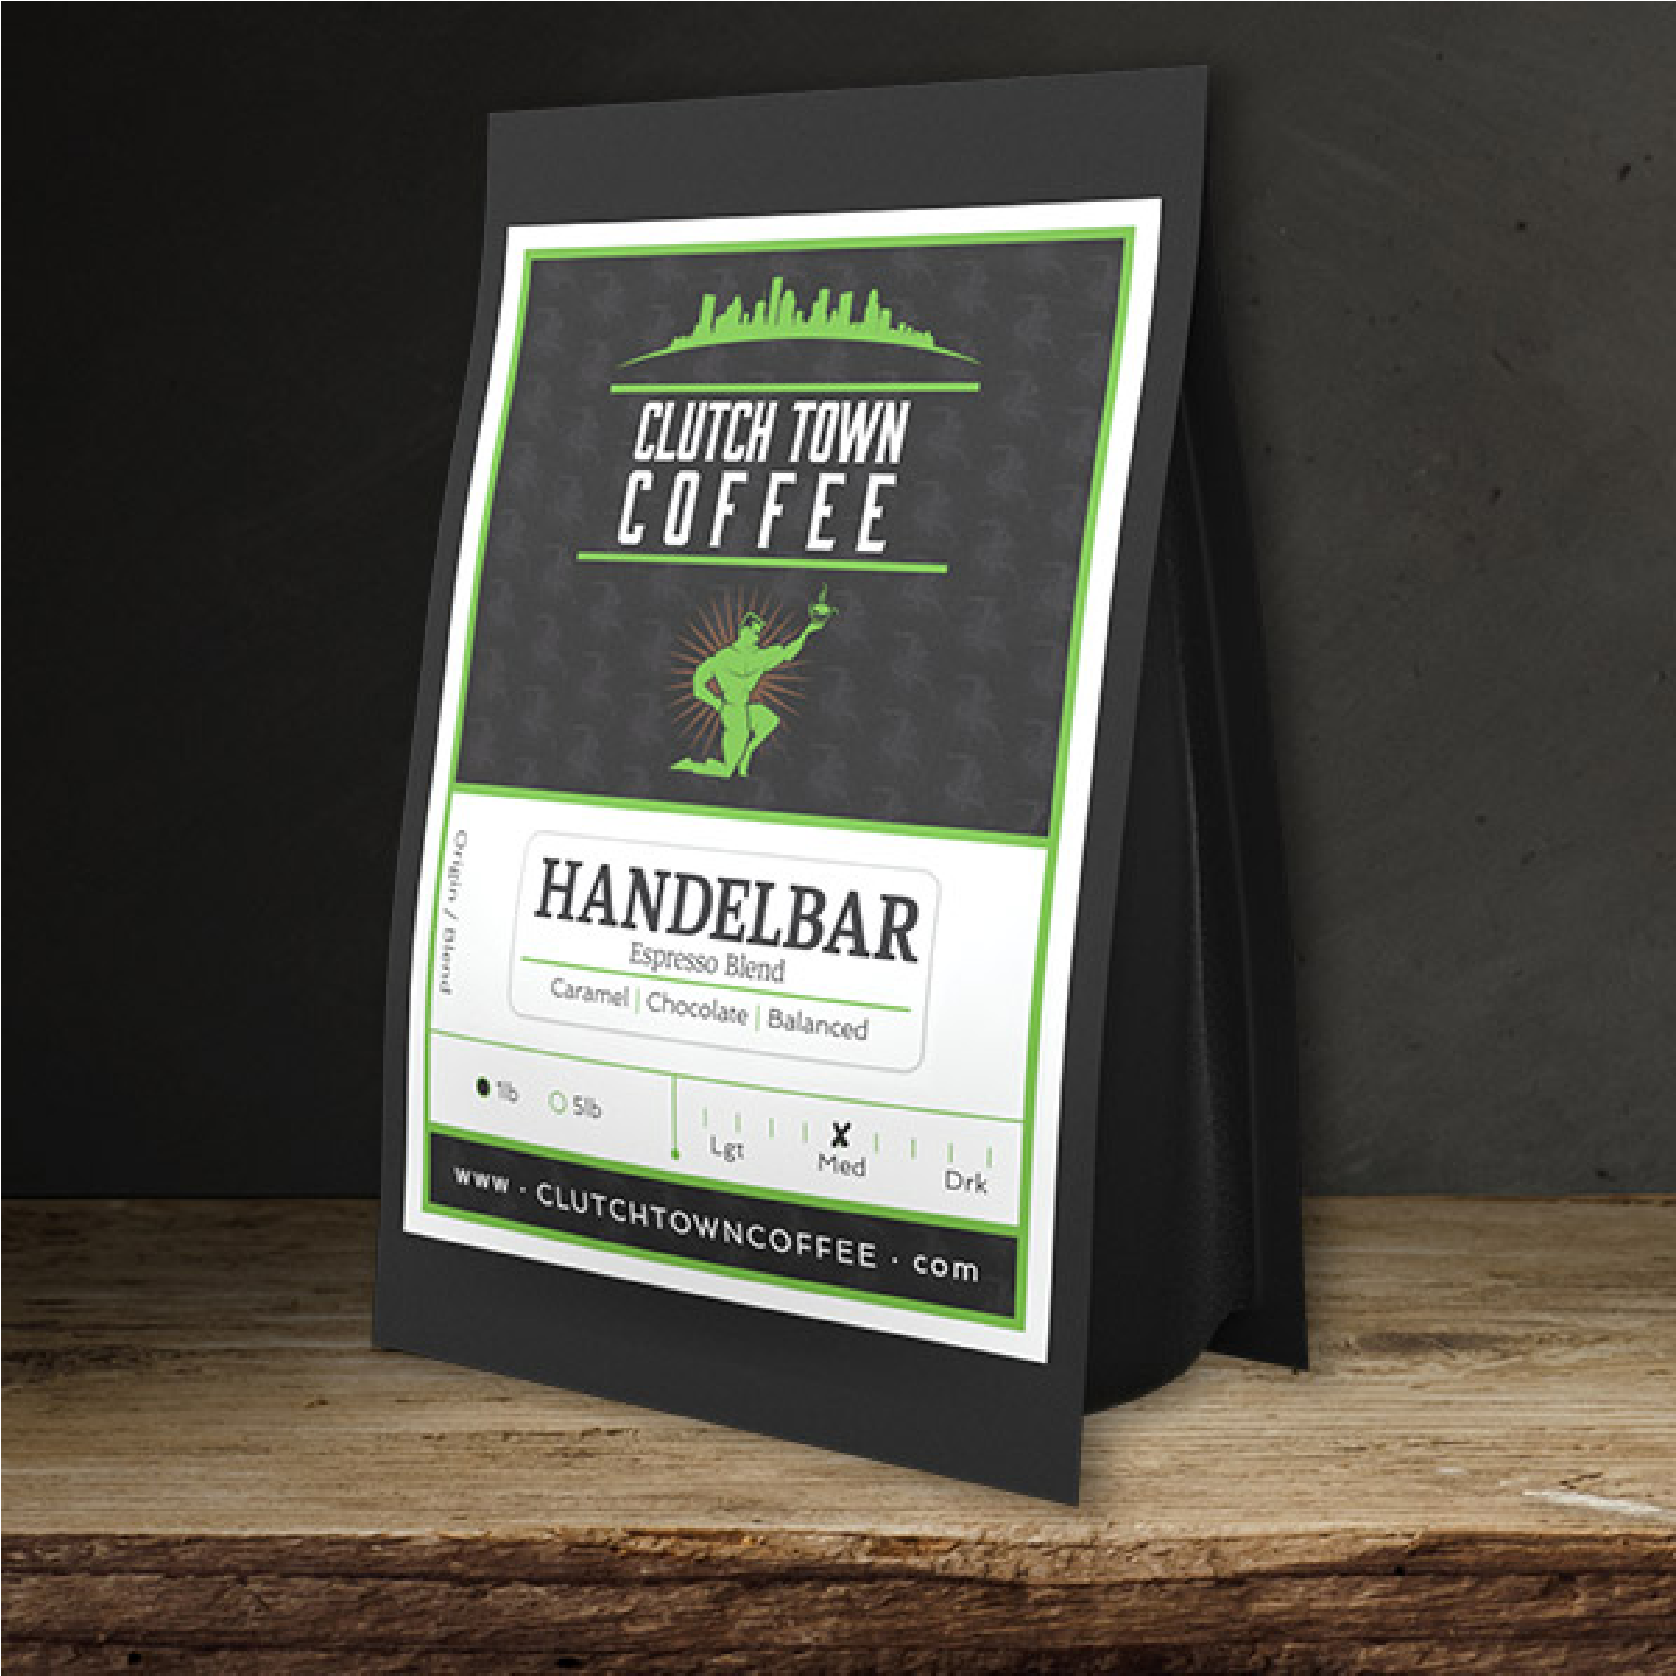 Handlebar from Clutch Town Coffee